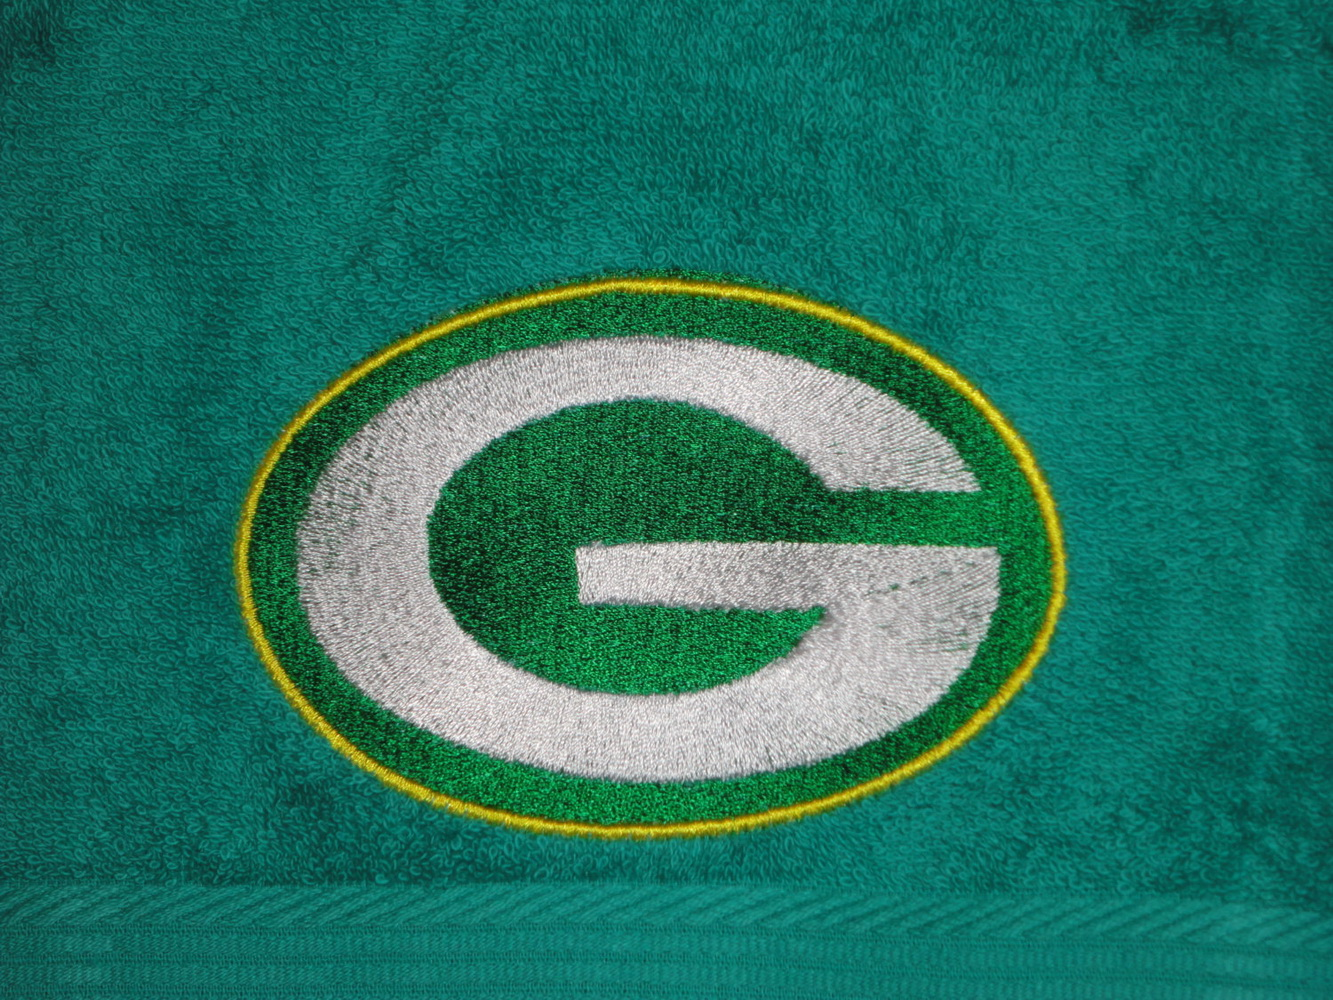 Green Bay Packers logo embroidery design on bath towel